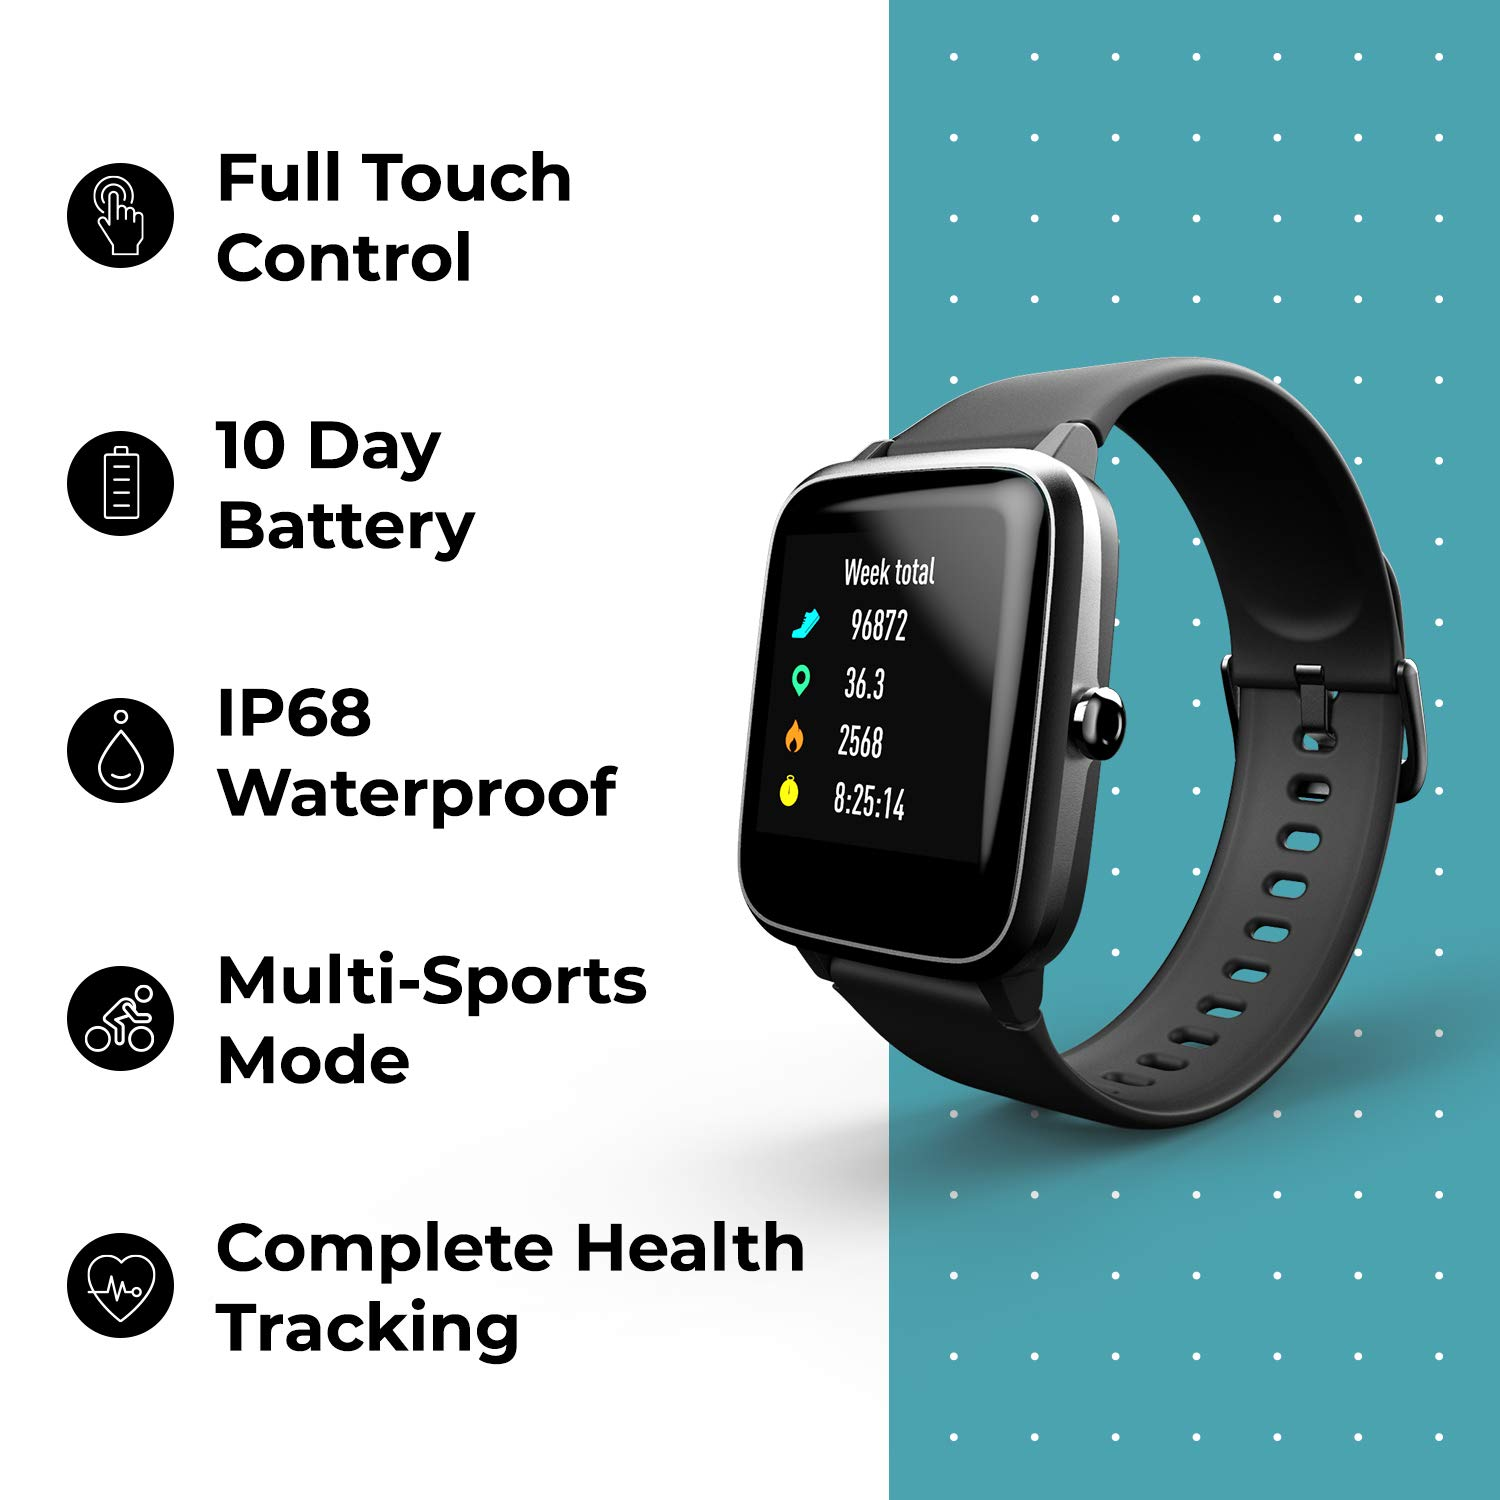 Noise-Full-Touch-Control-Smart-Watch-Jet-Black